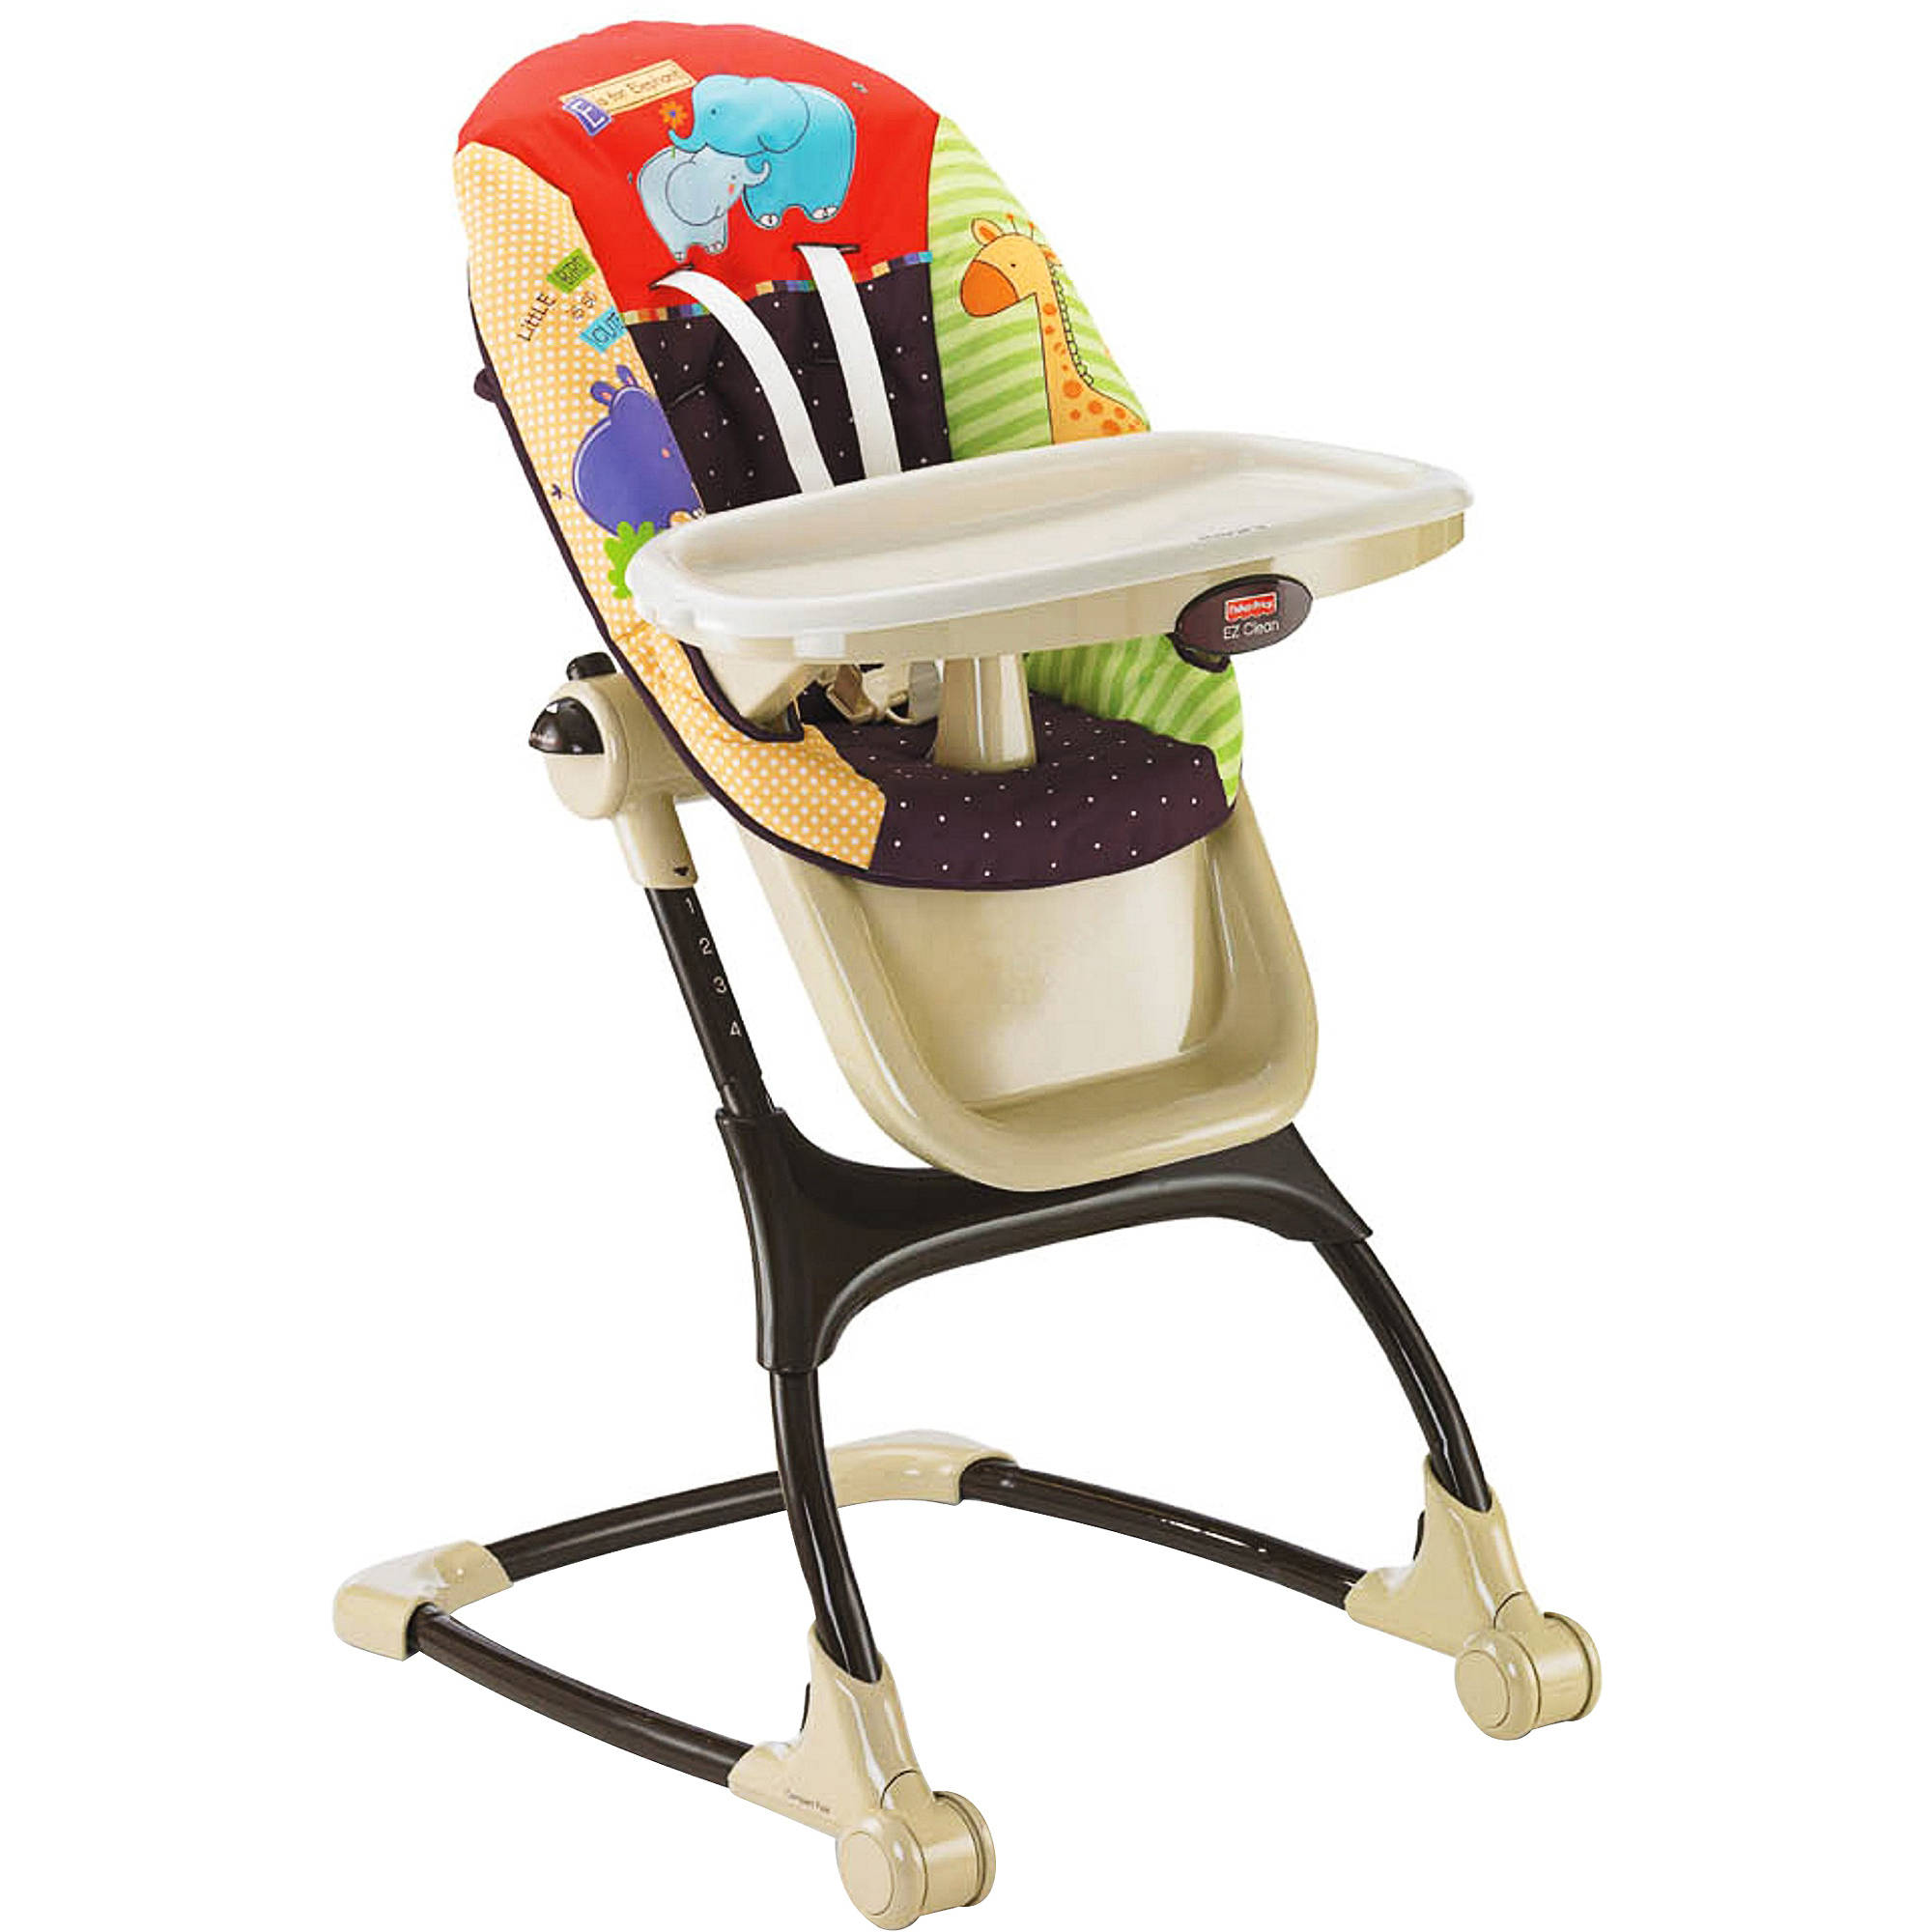 FisherPrice 4in1 Total Clean High Chair  Walmartcom